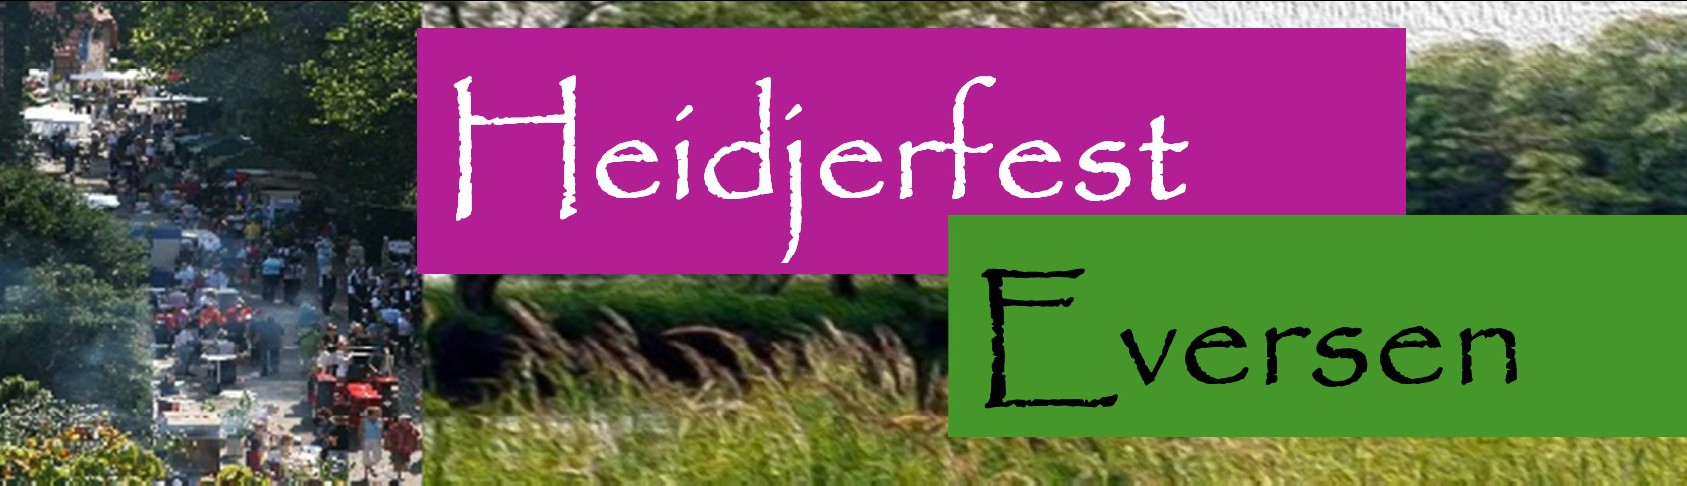 Heidjerfest Eversen – xx. August 2018